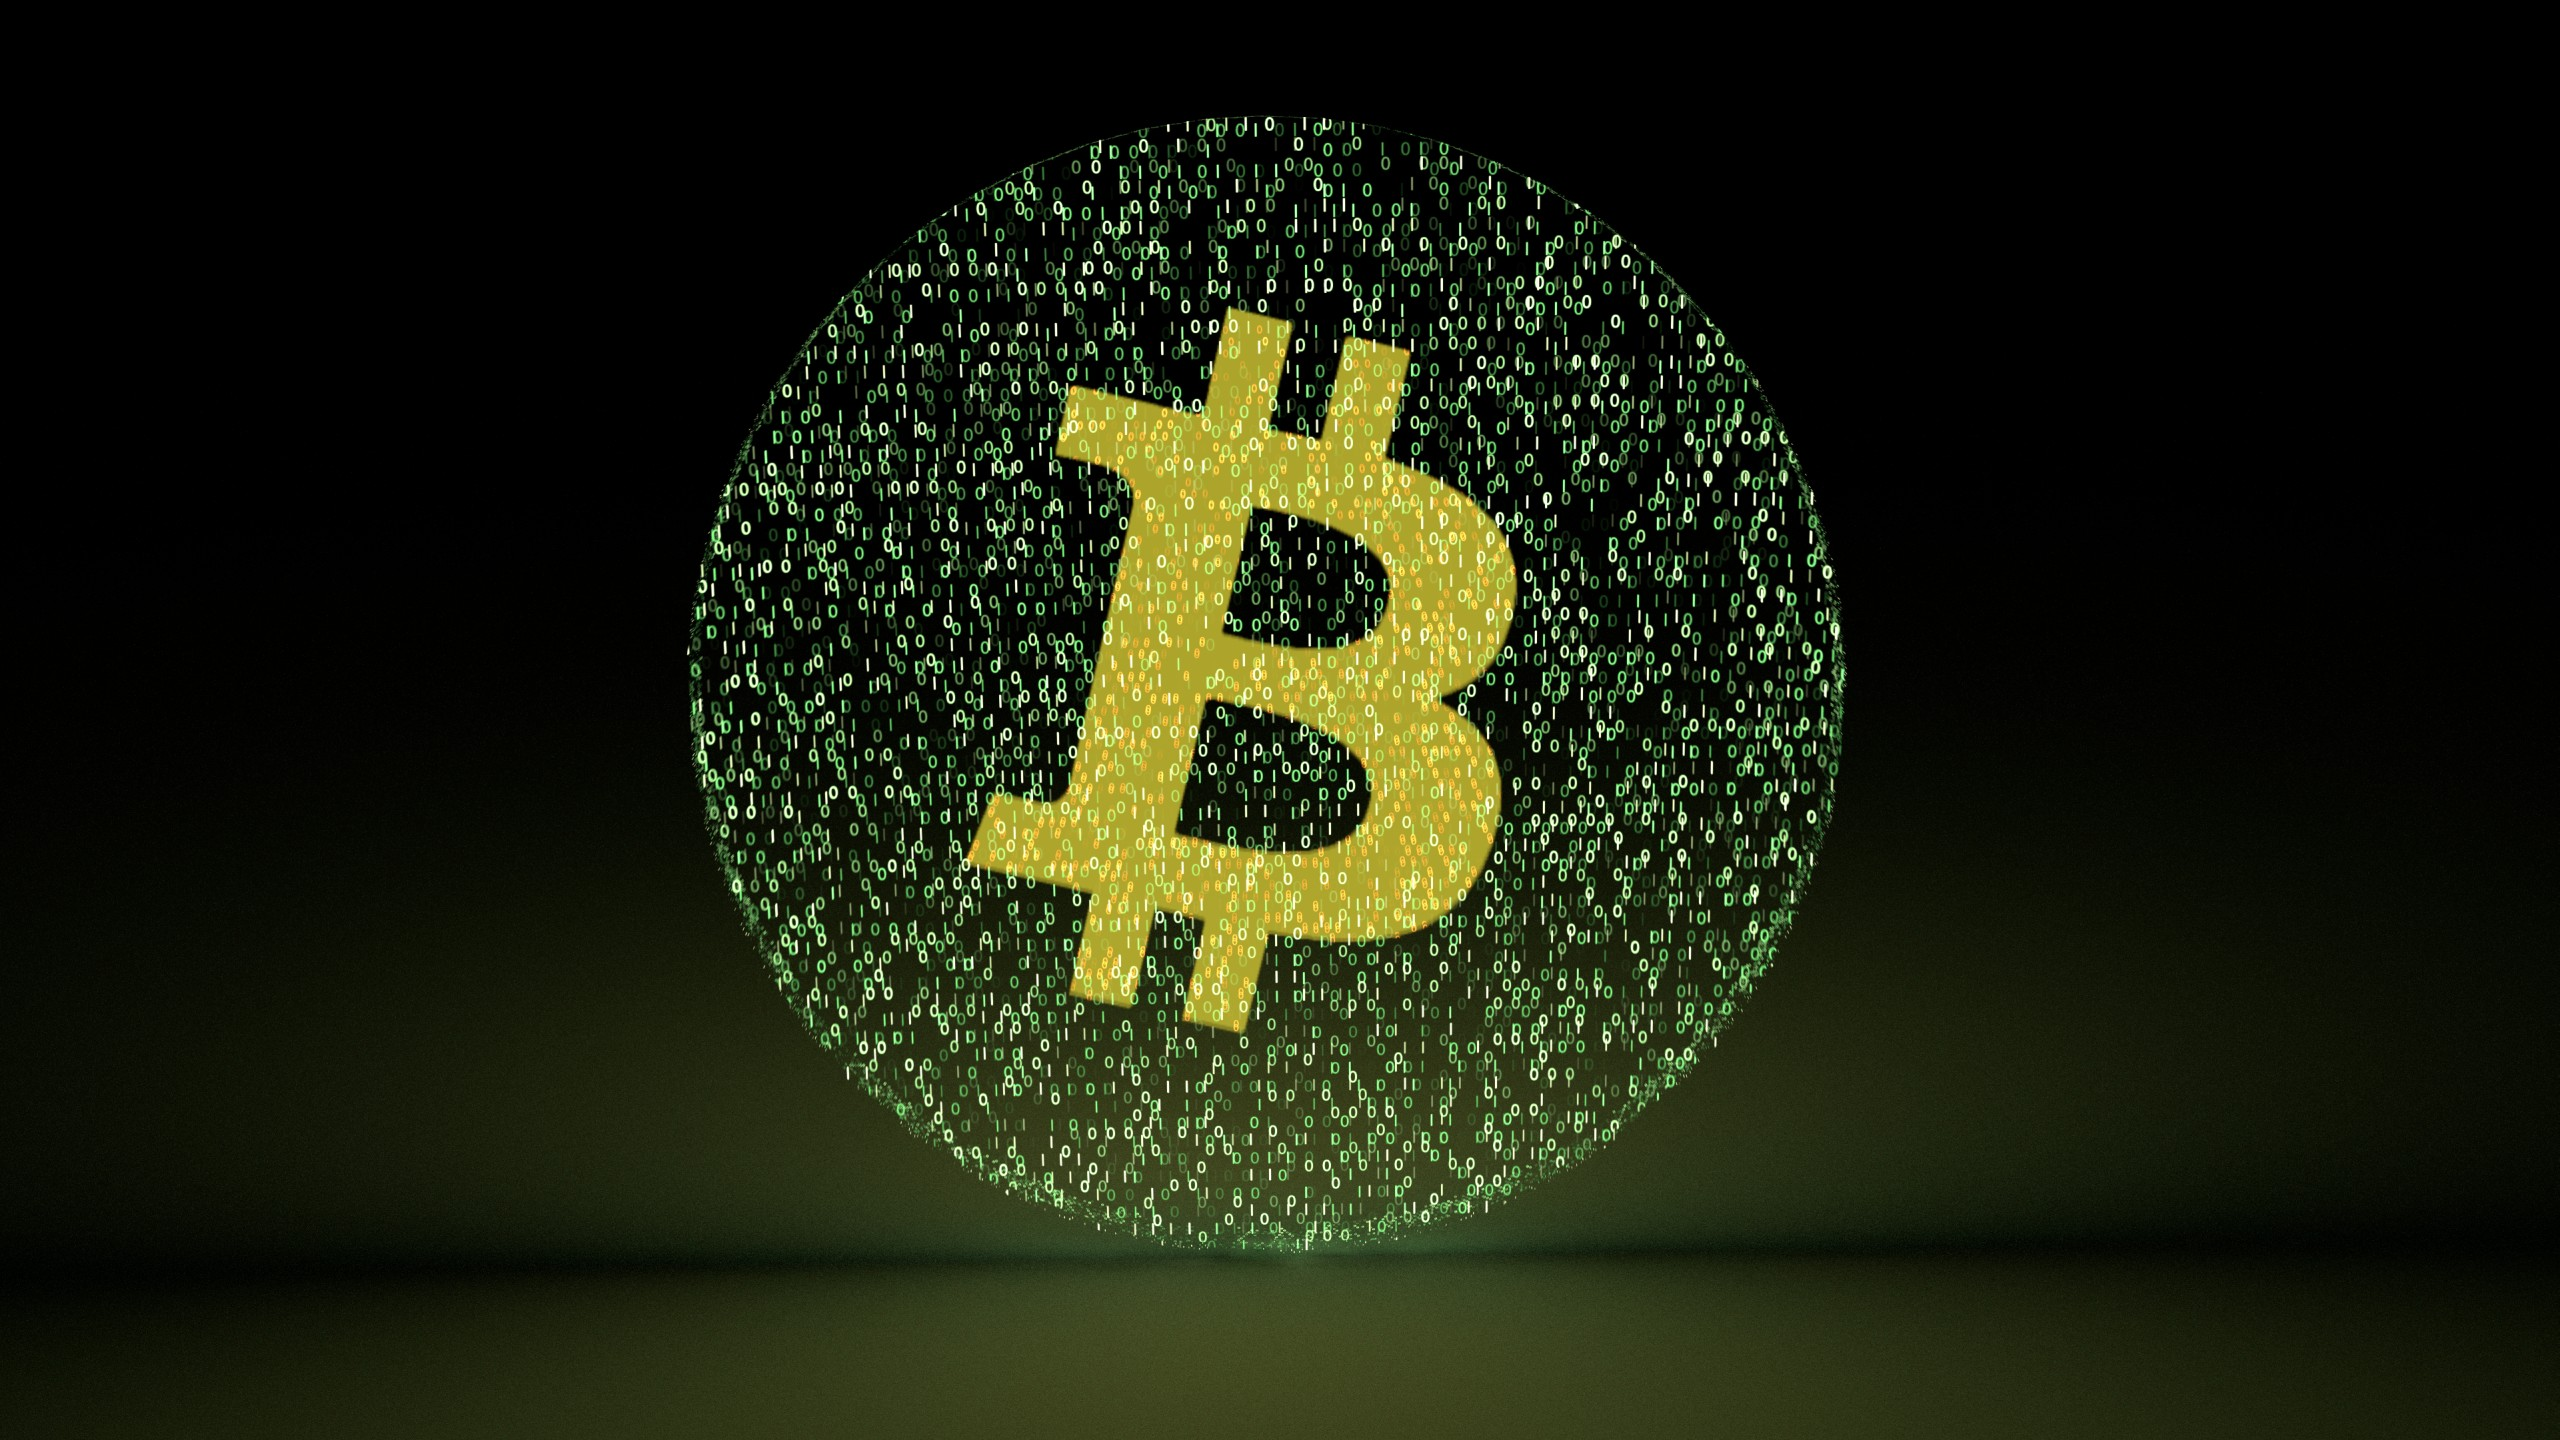 Bitcoin Wallpapers and Background Images   stmednet 2560x1440